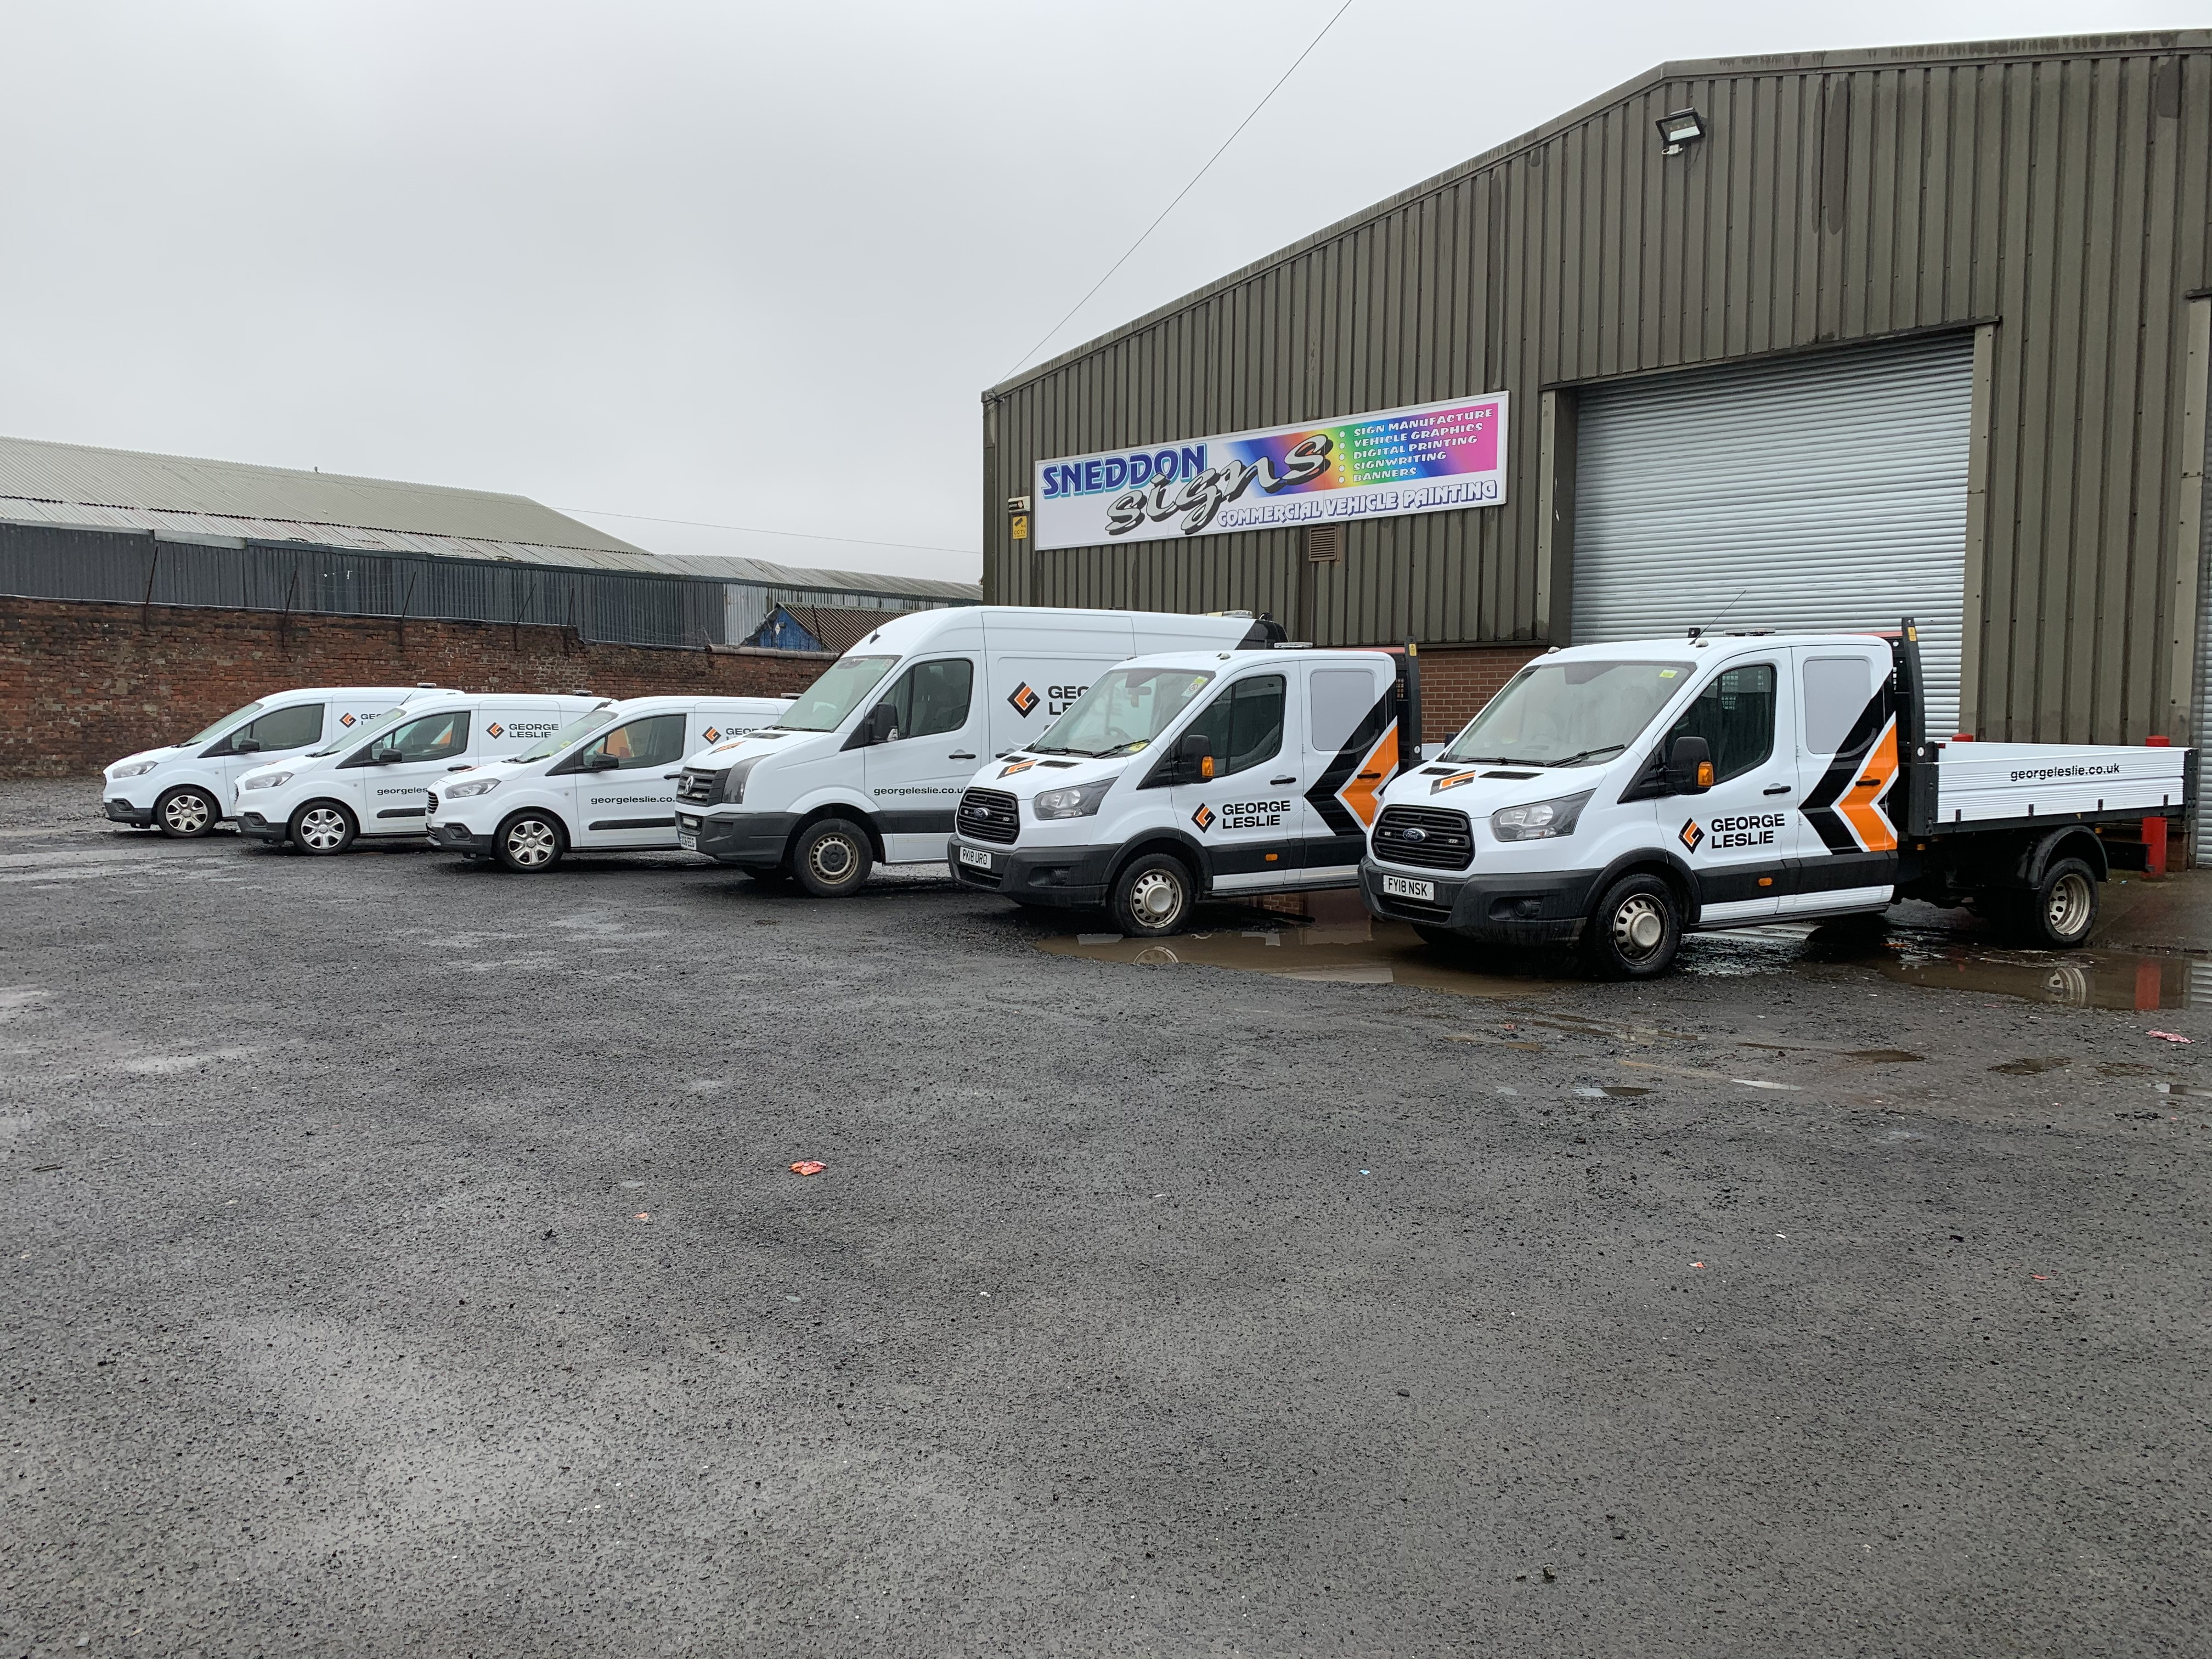 George Leslie's fleet includes a range of light and heavy commerical vehicles